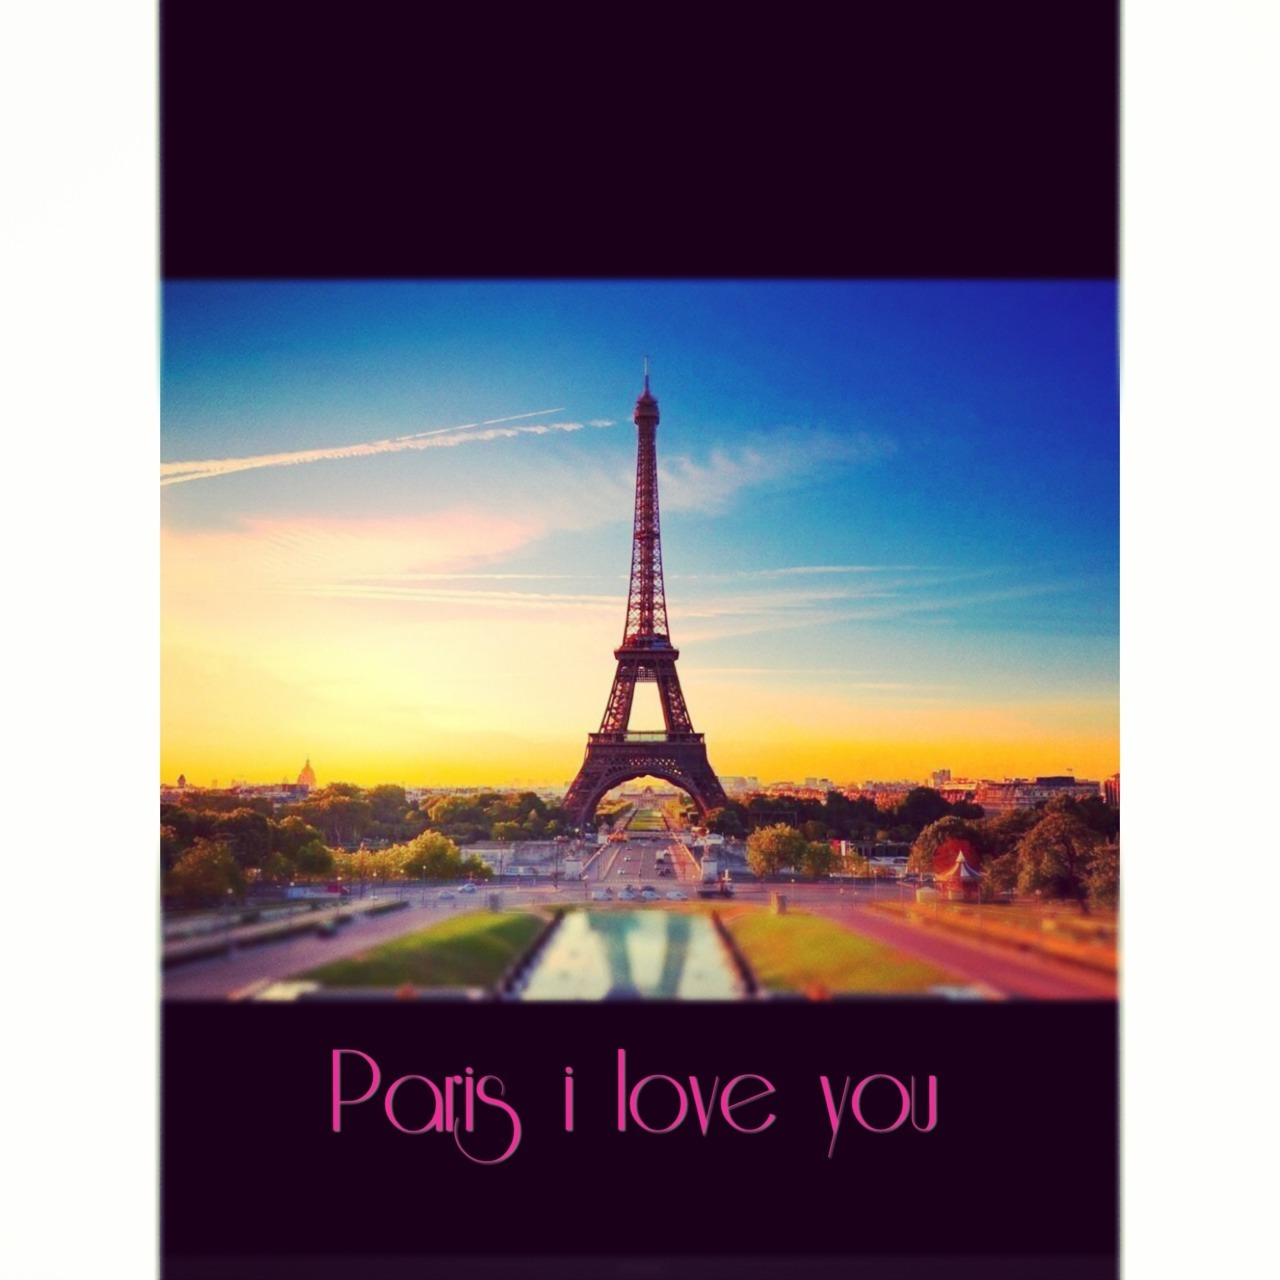 Paris I love you ❤